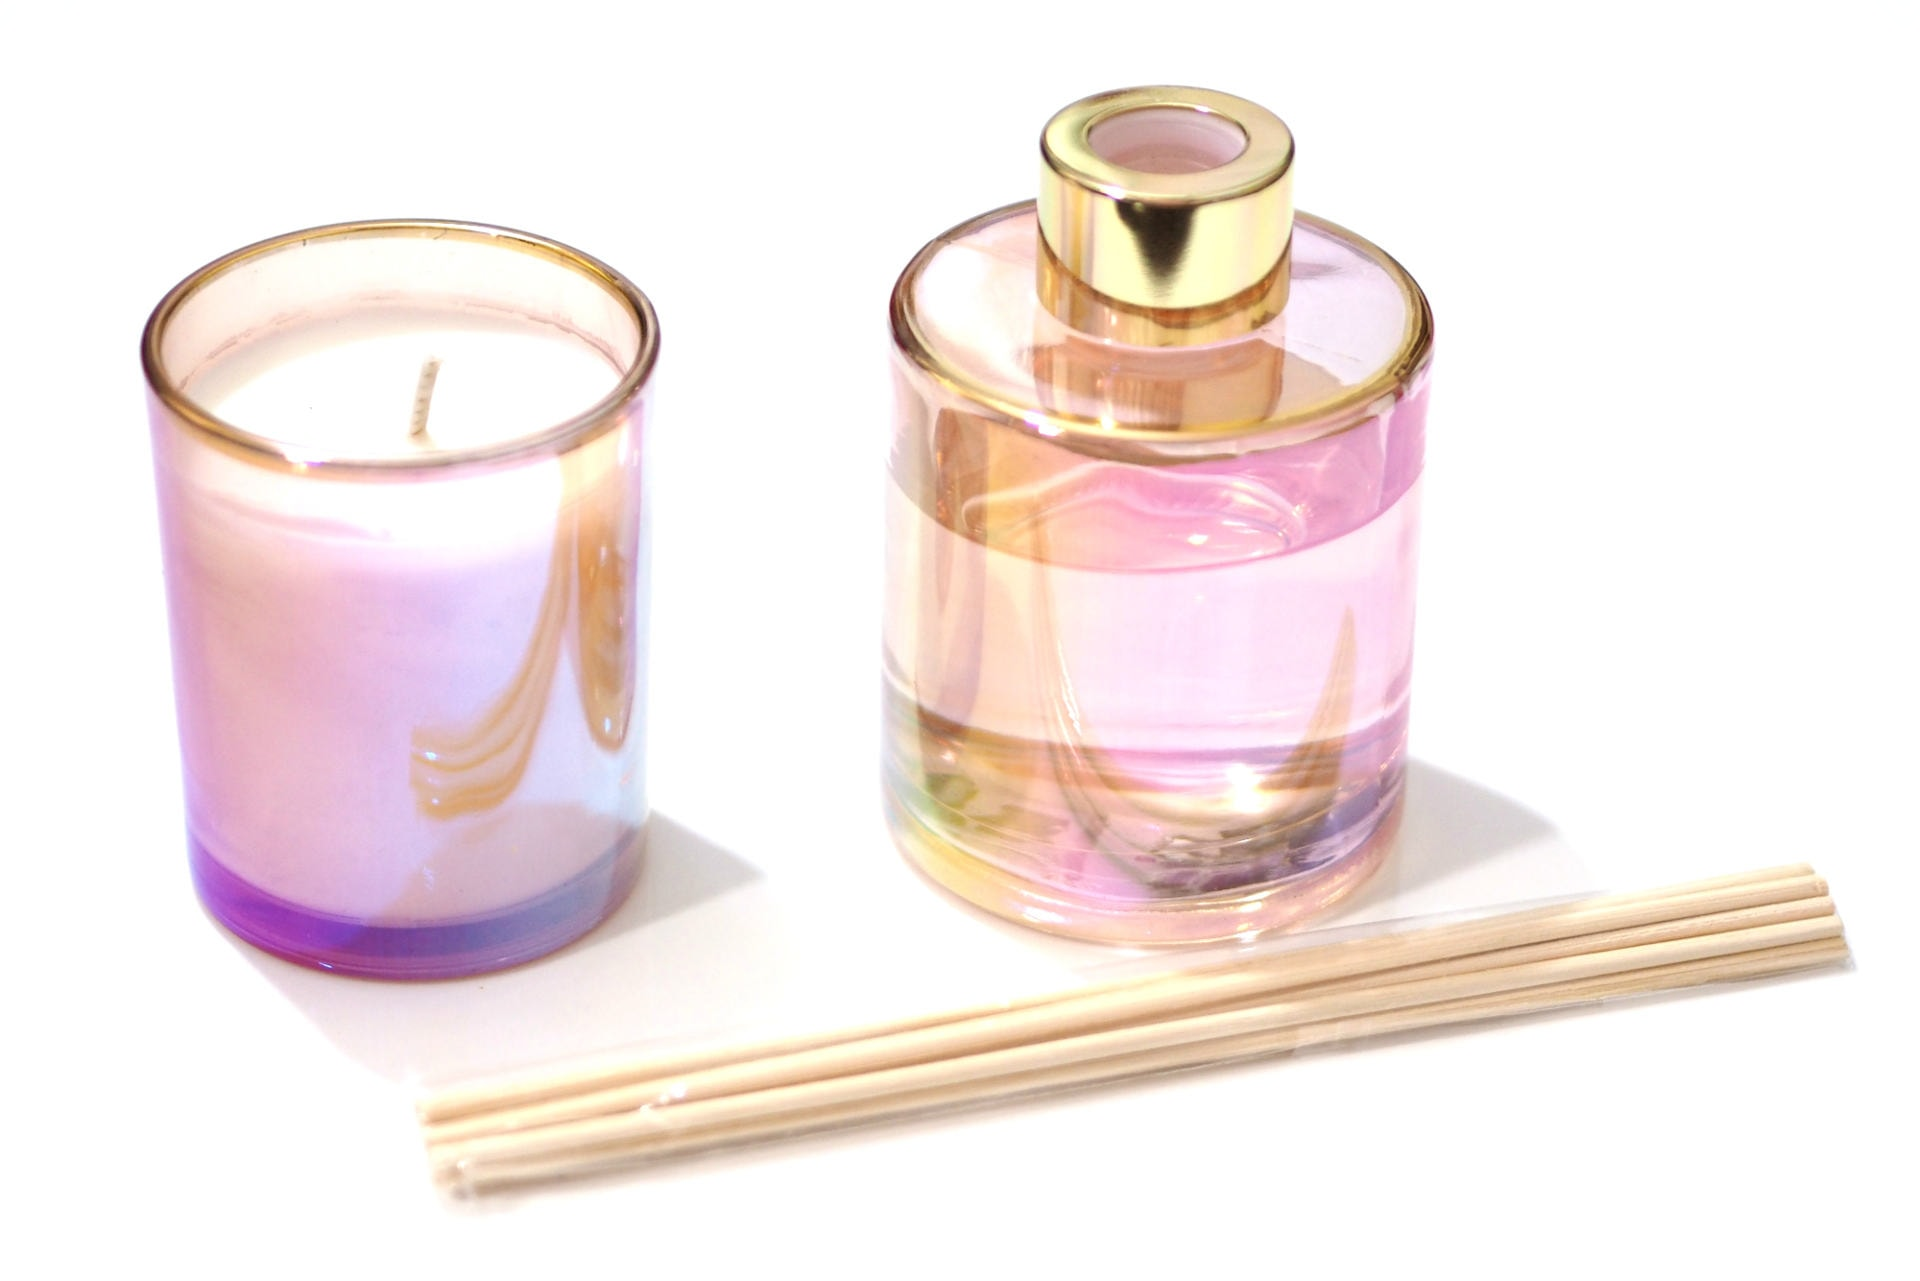 Estella by Sophia Lily Blossom Candle and Reed Diffuser Gift Set